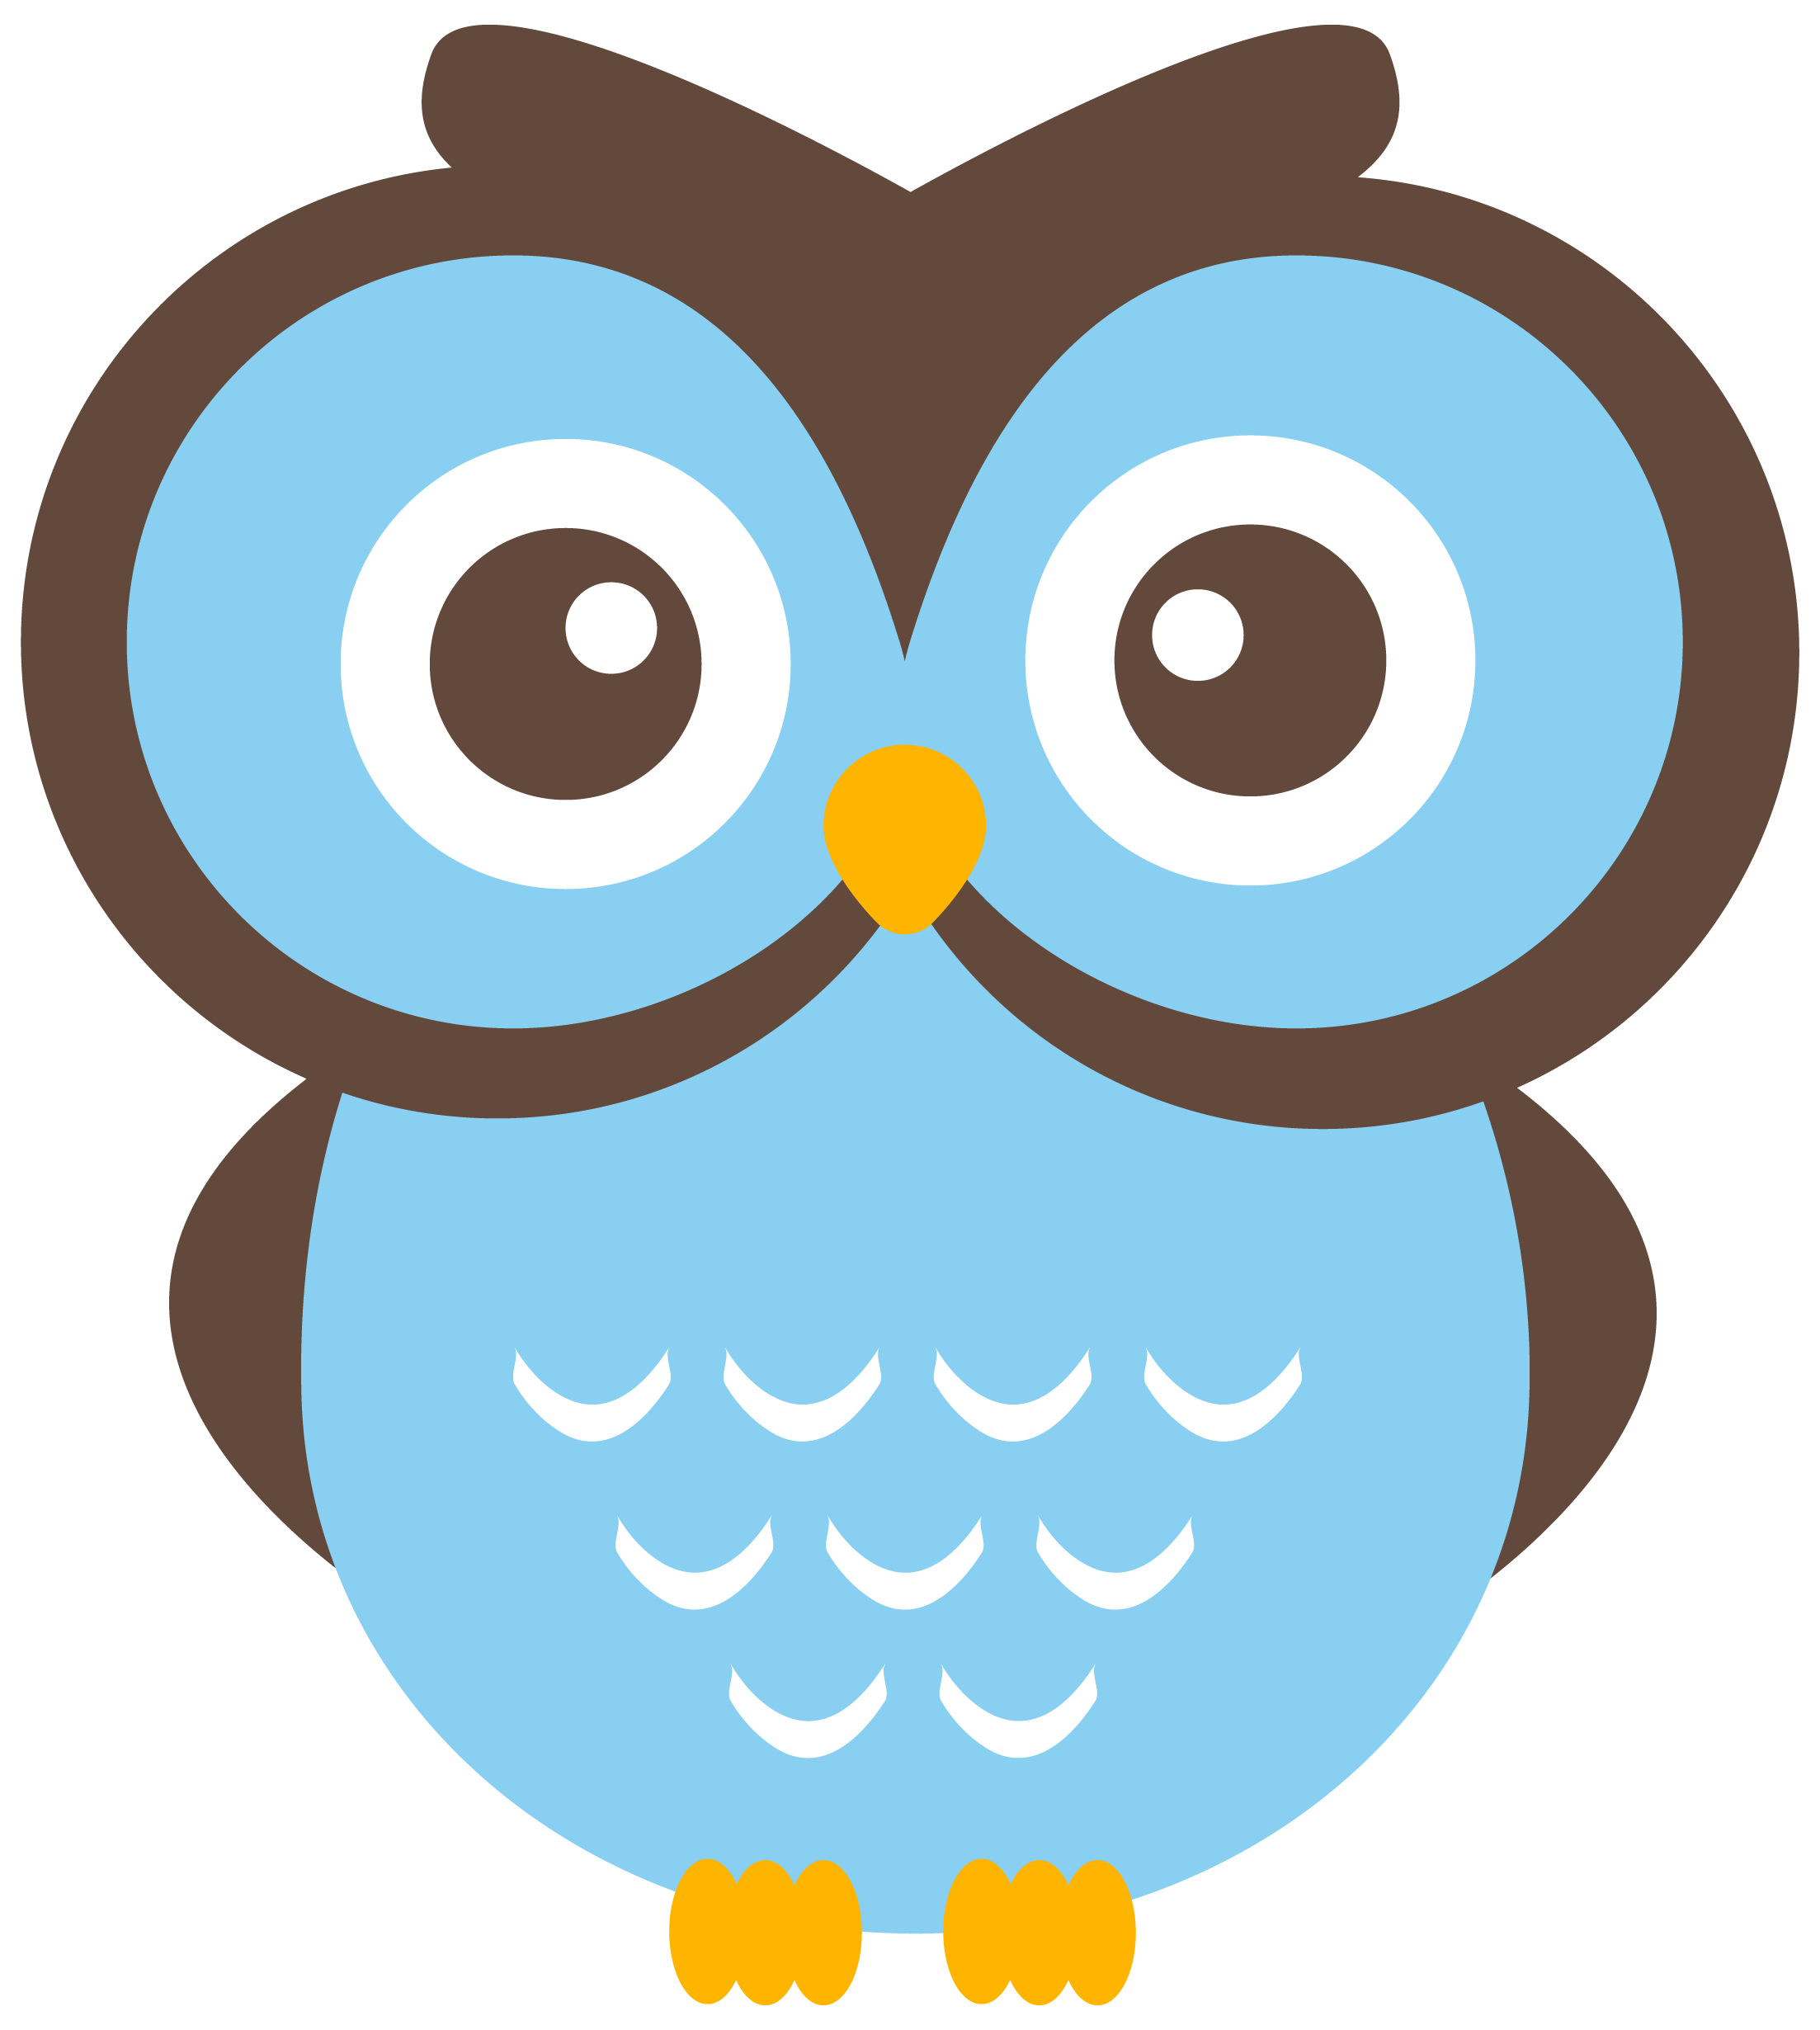 Owl Vacation Free Cliparts All Used For -Owl Vacation Free Cliparts All Used For Free-12